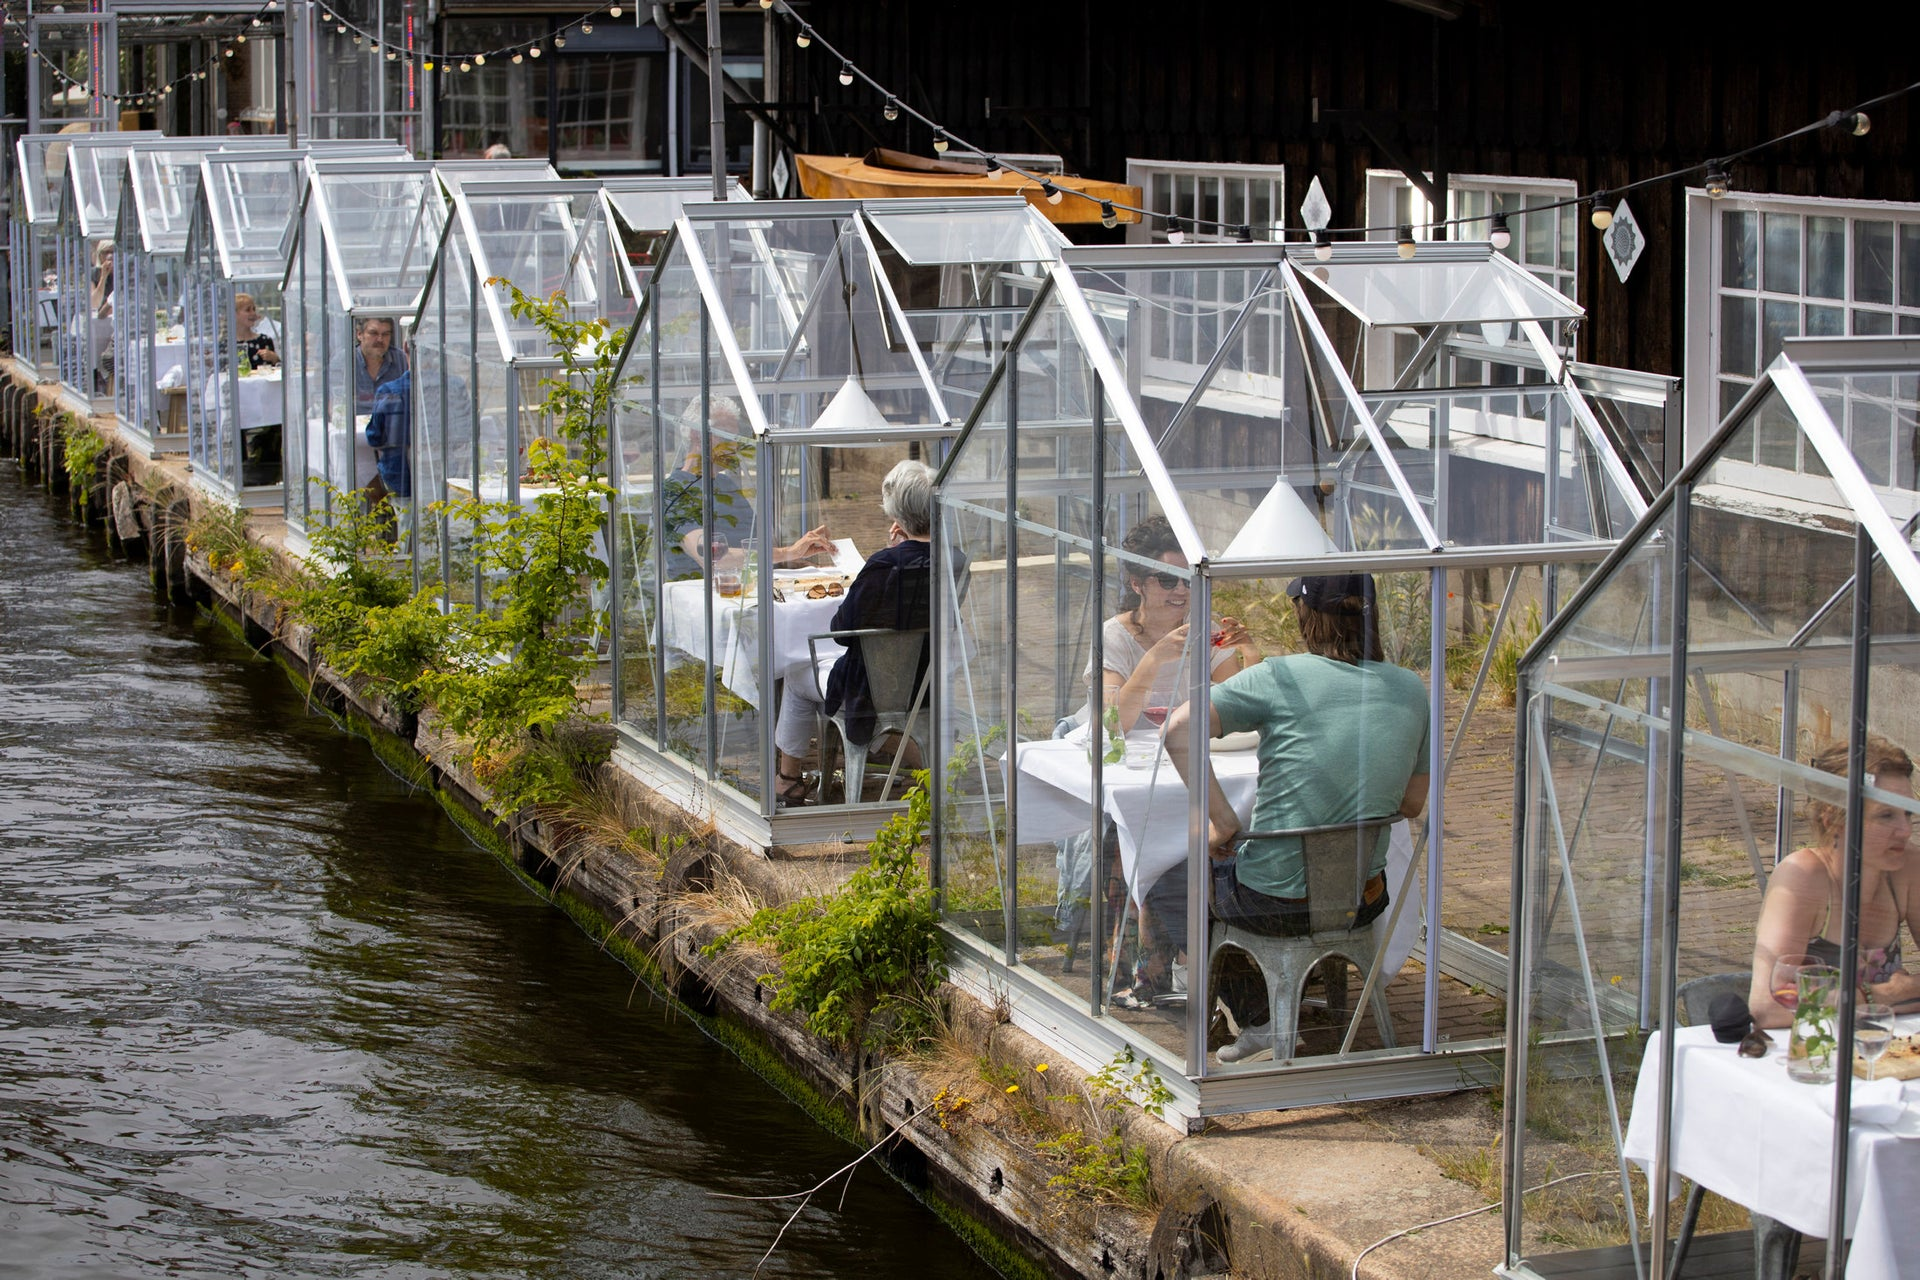 Customers seated in small glasshouses enjoy lunch at the Mediamatic restaurant in Amsterdam, Netherlands, June 1, 2020.